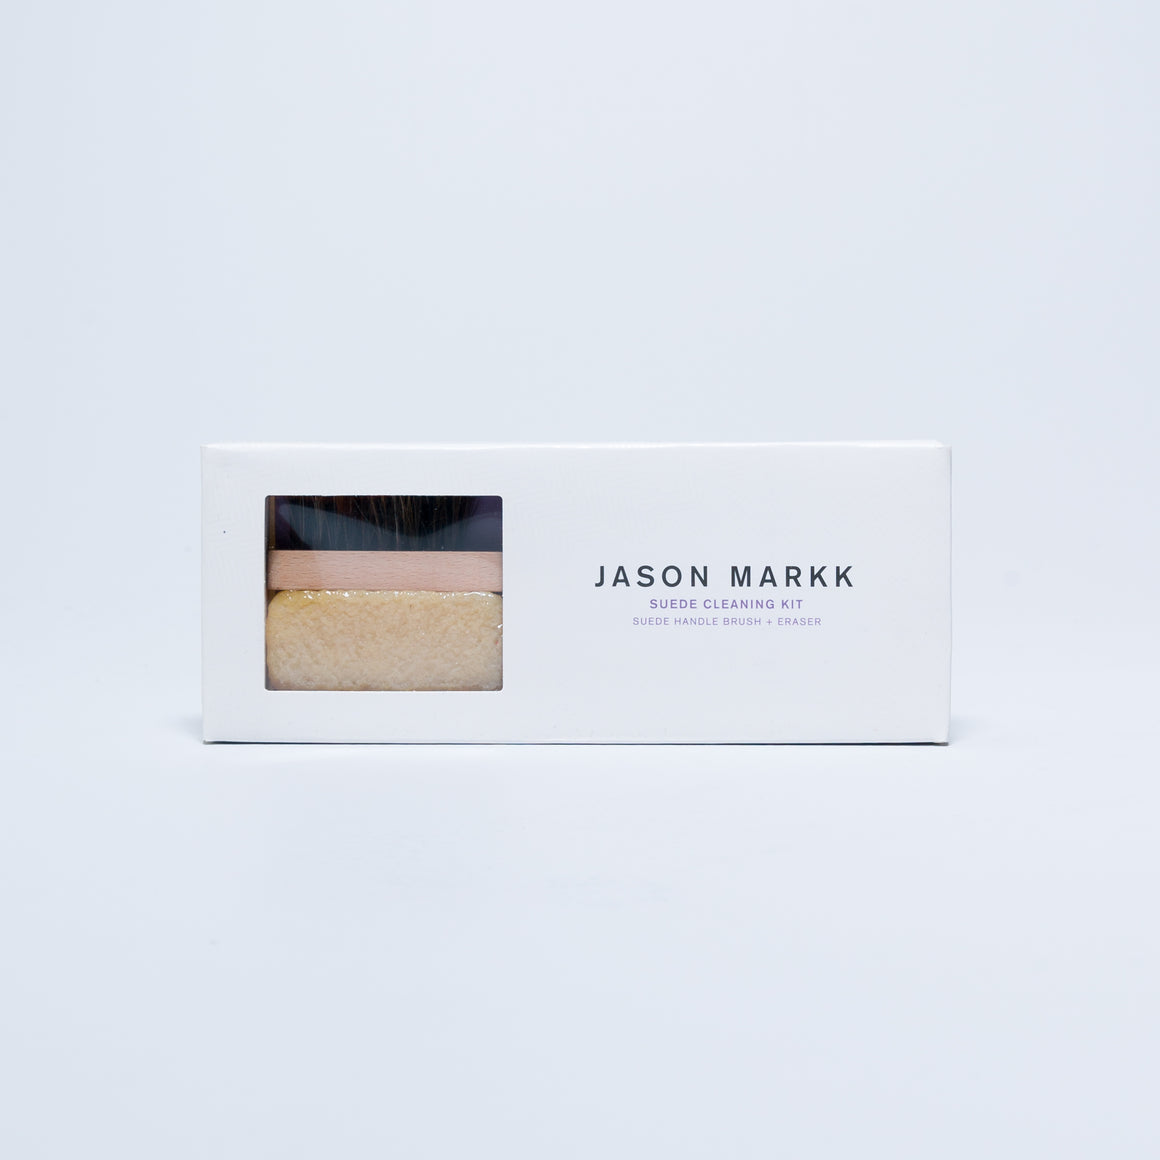 Jason Markk - [title] - Up There